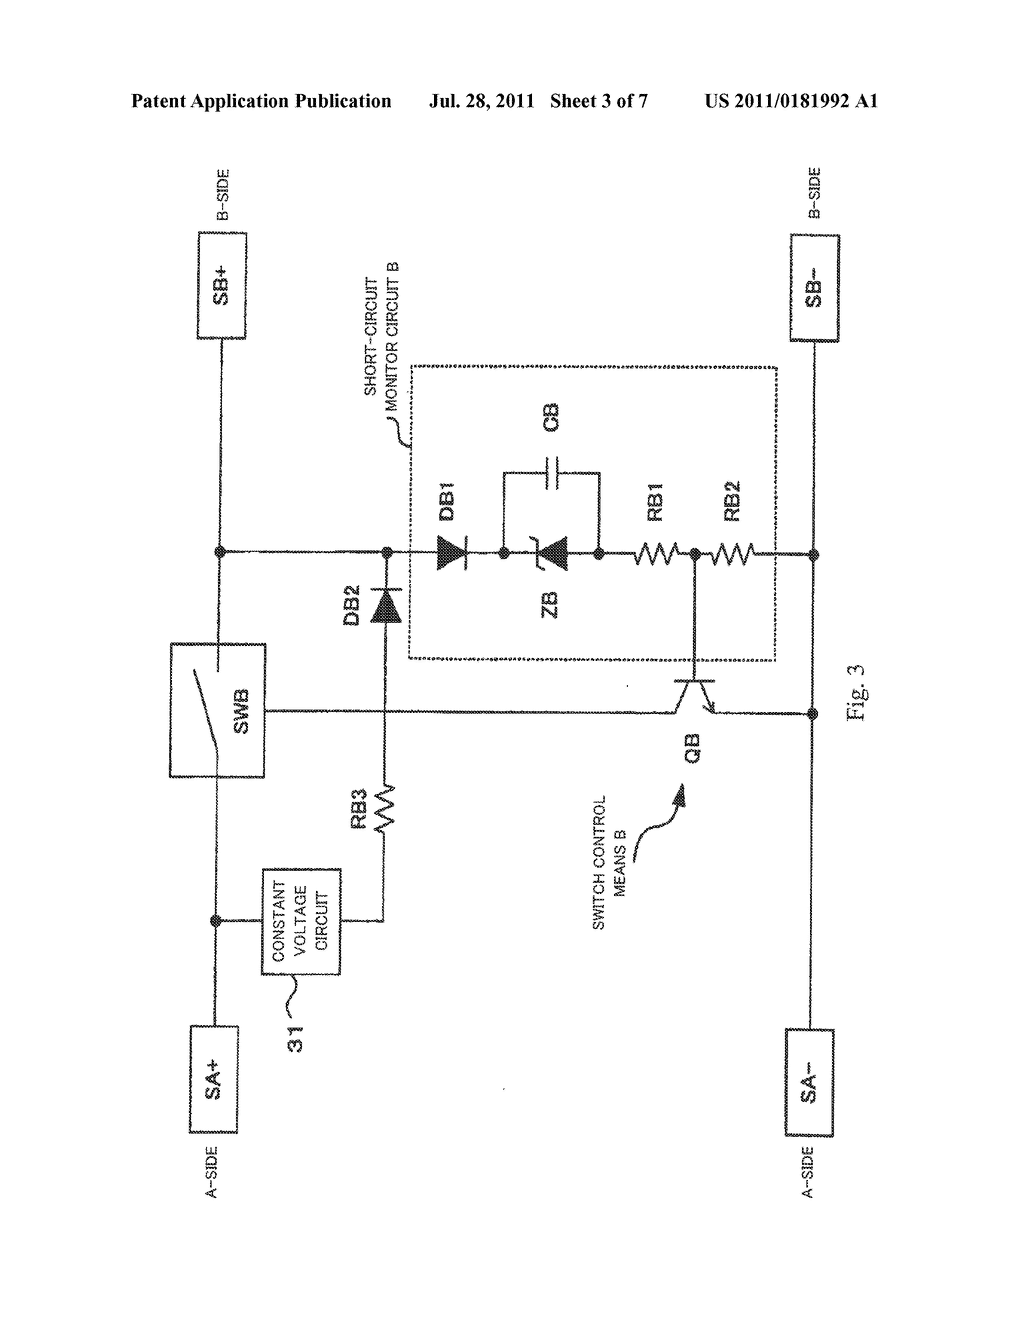 short circuit isolator diagram, schematic, and image 04 opto electronic isolator schematic isolator schematic #3